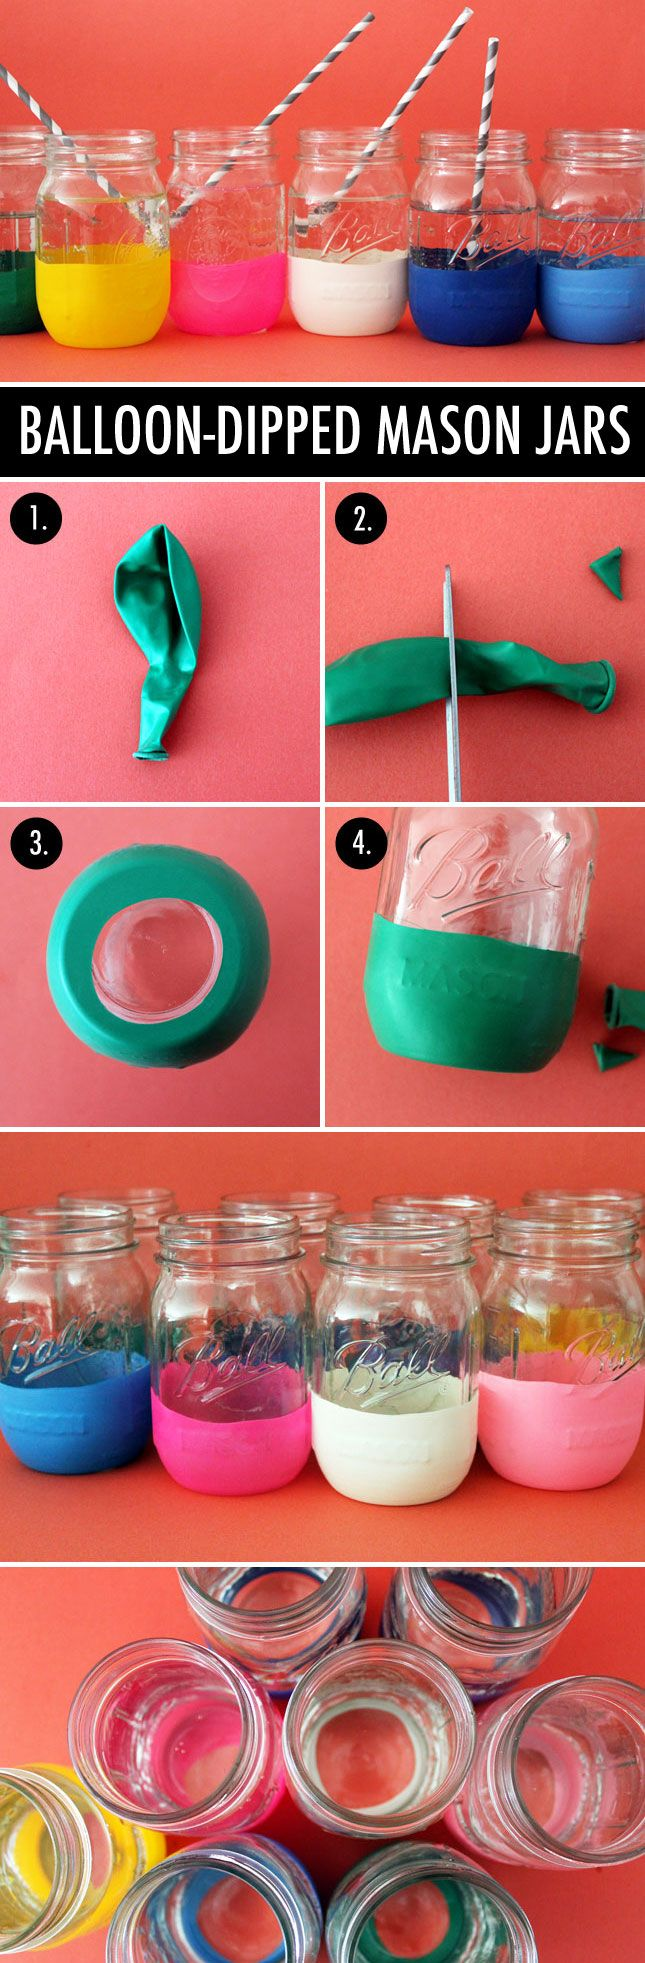 Add color to your kitchen with balloon dipped mason jars jar add color to your kitchen with balloon dipped mason jars cute ideasdiy solutioingenieria Image collections